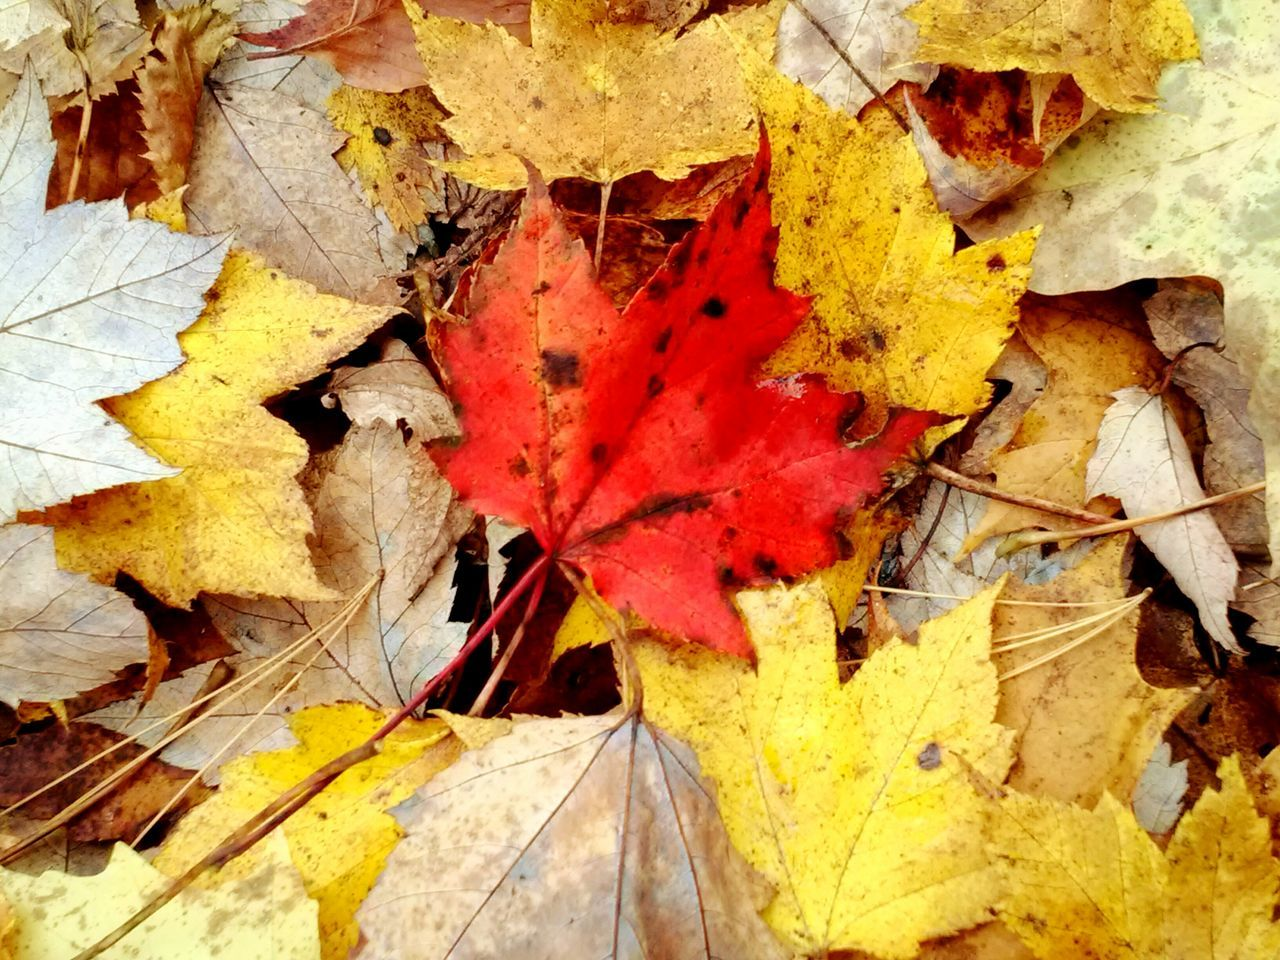 autumn, leaf, change, dry, yellow, maple leaf, fallen, close-up, no people, fragility, maple, backgrounds, large group of objects, group of objects, nature, day, outdoors, white background